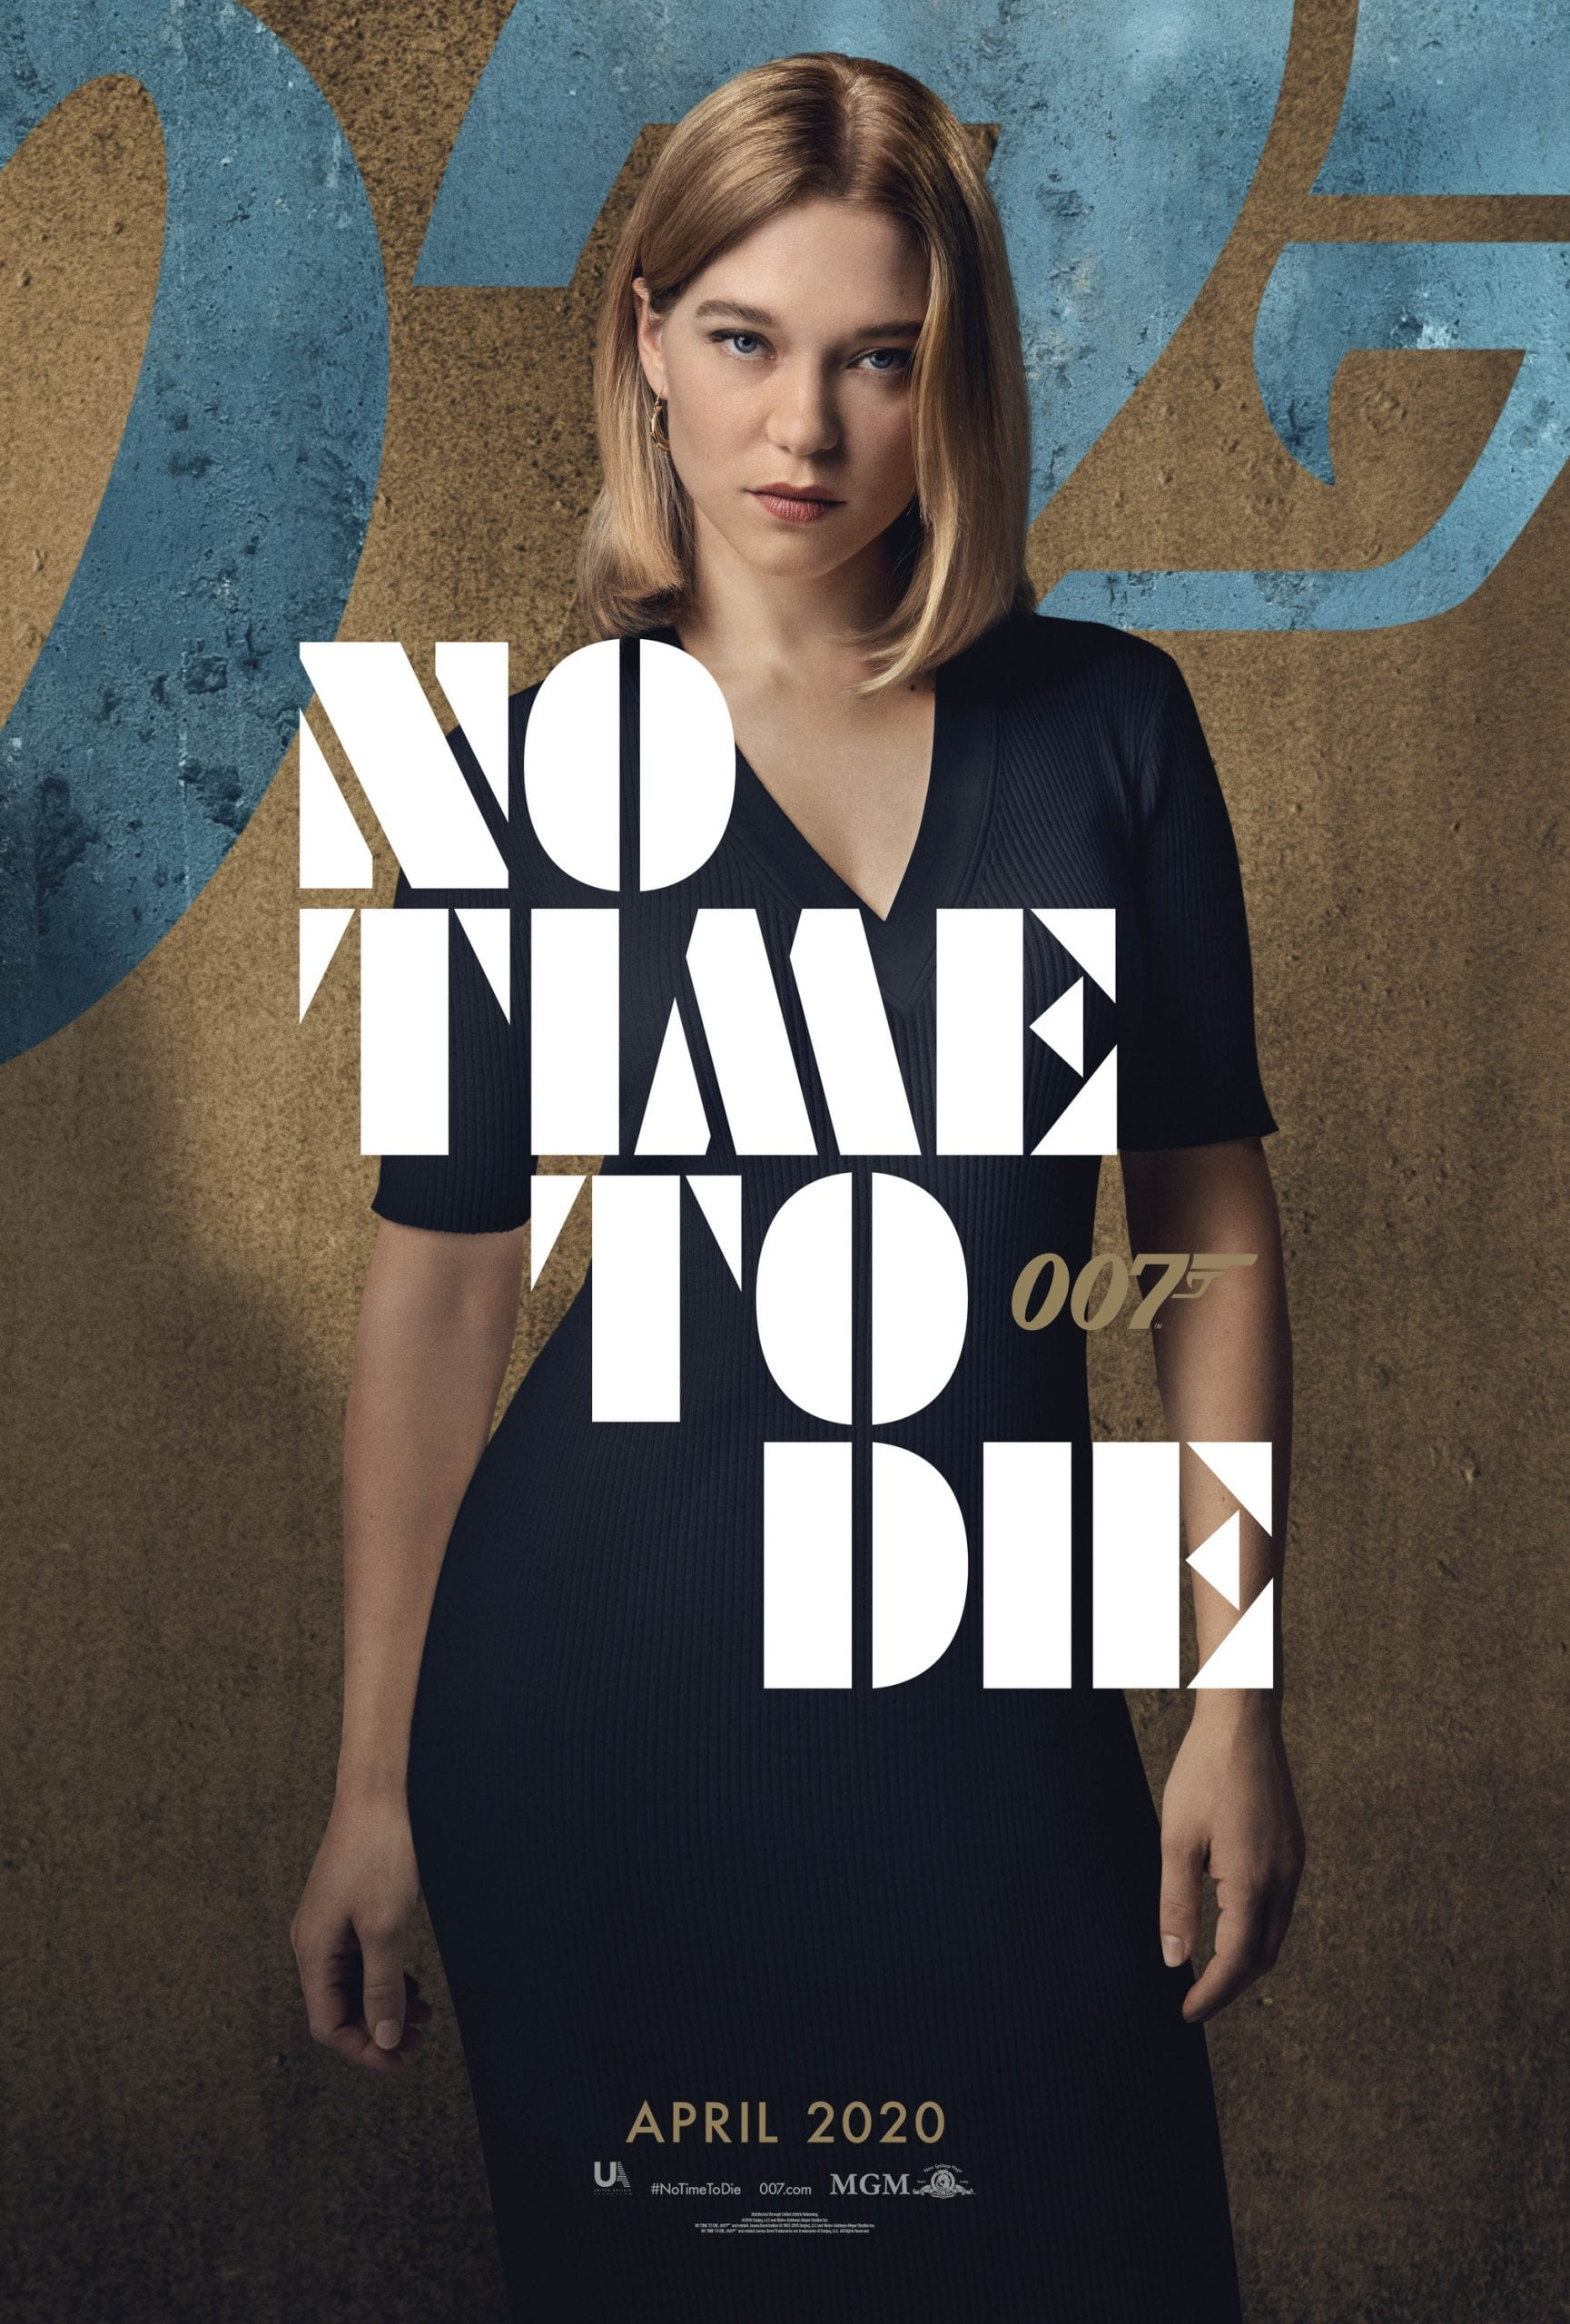 007 No Time To Die Bond 25 Character Posters Lea Seydoux as Dr Madeleine Swann